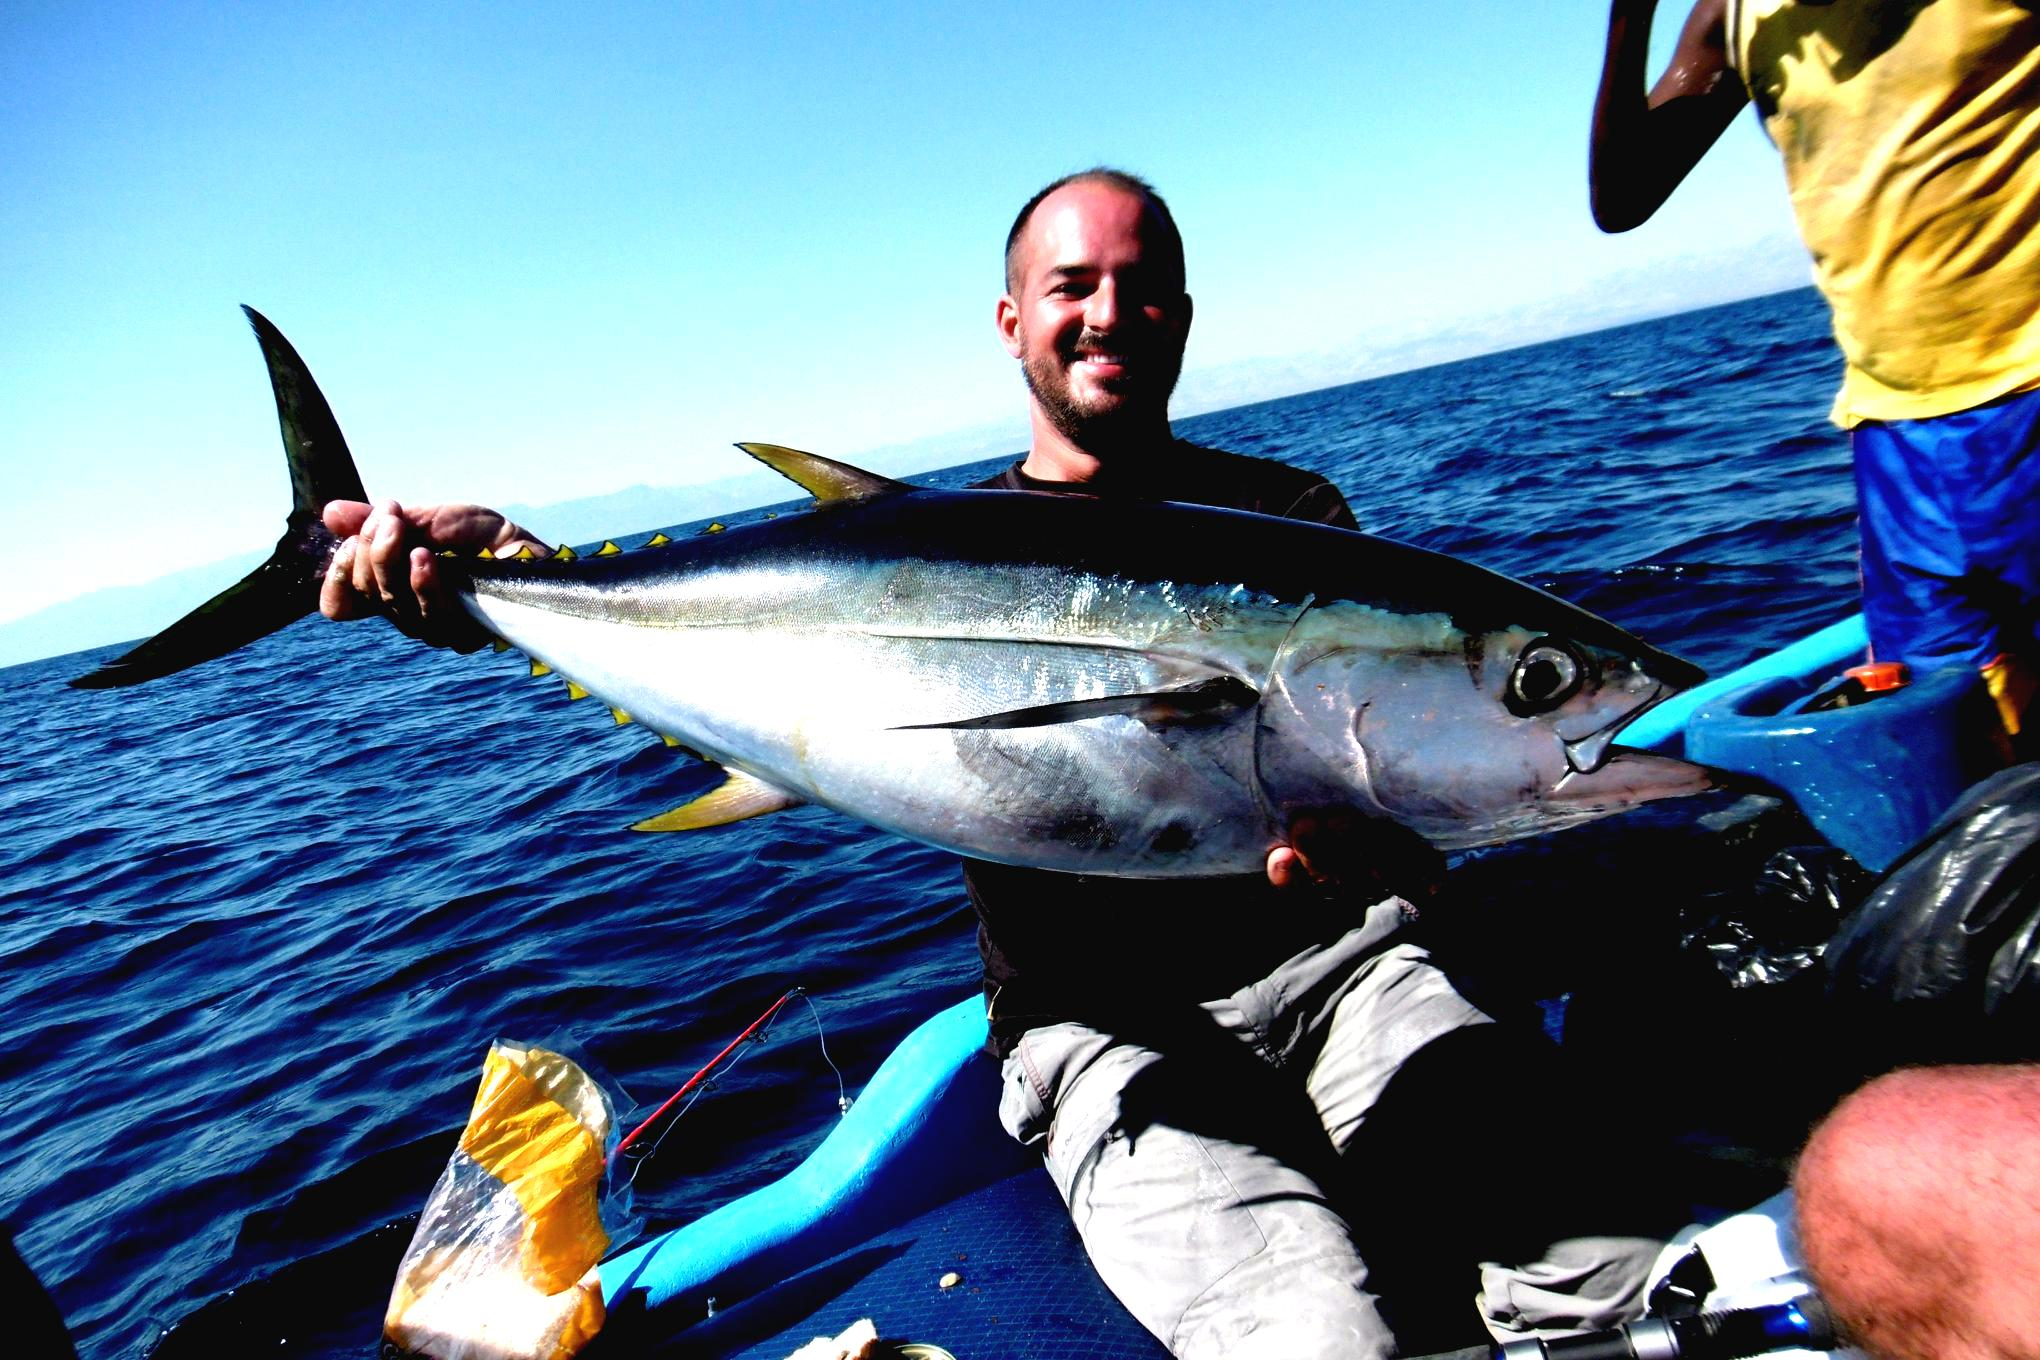 fish-yellowfin-tuna-djibouti